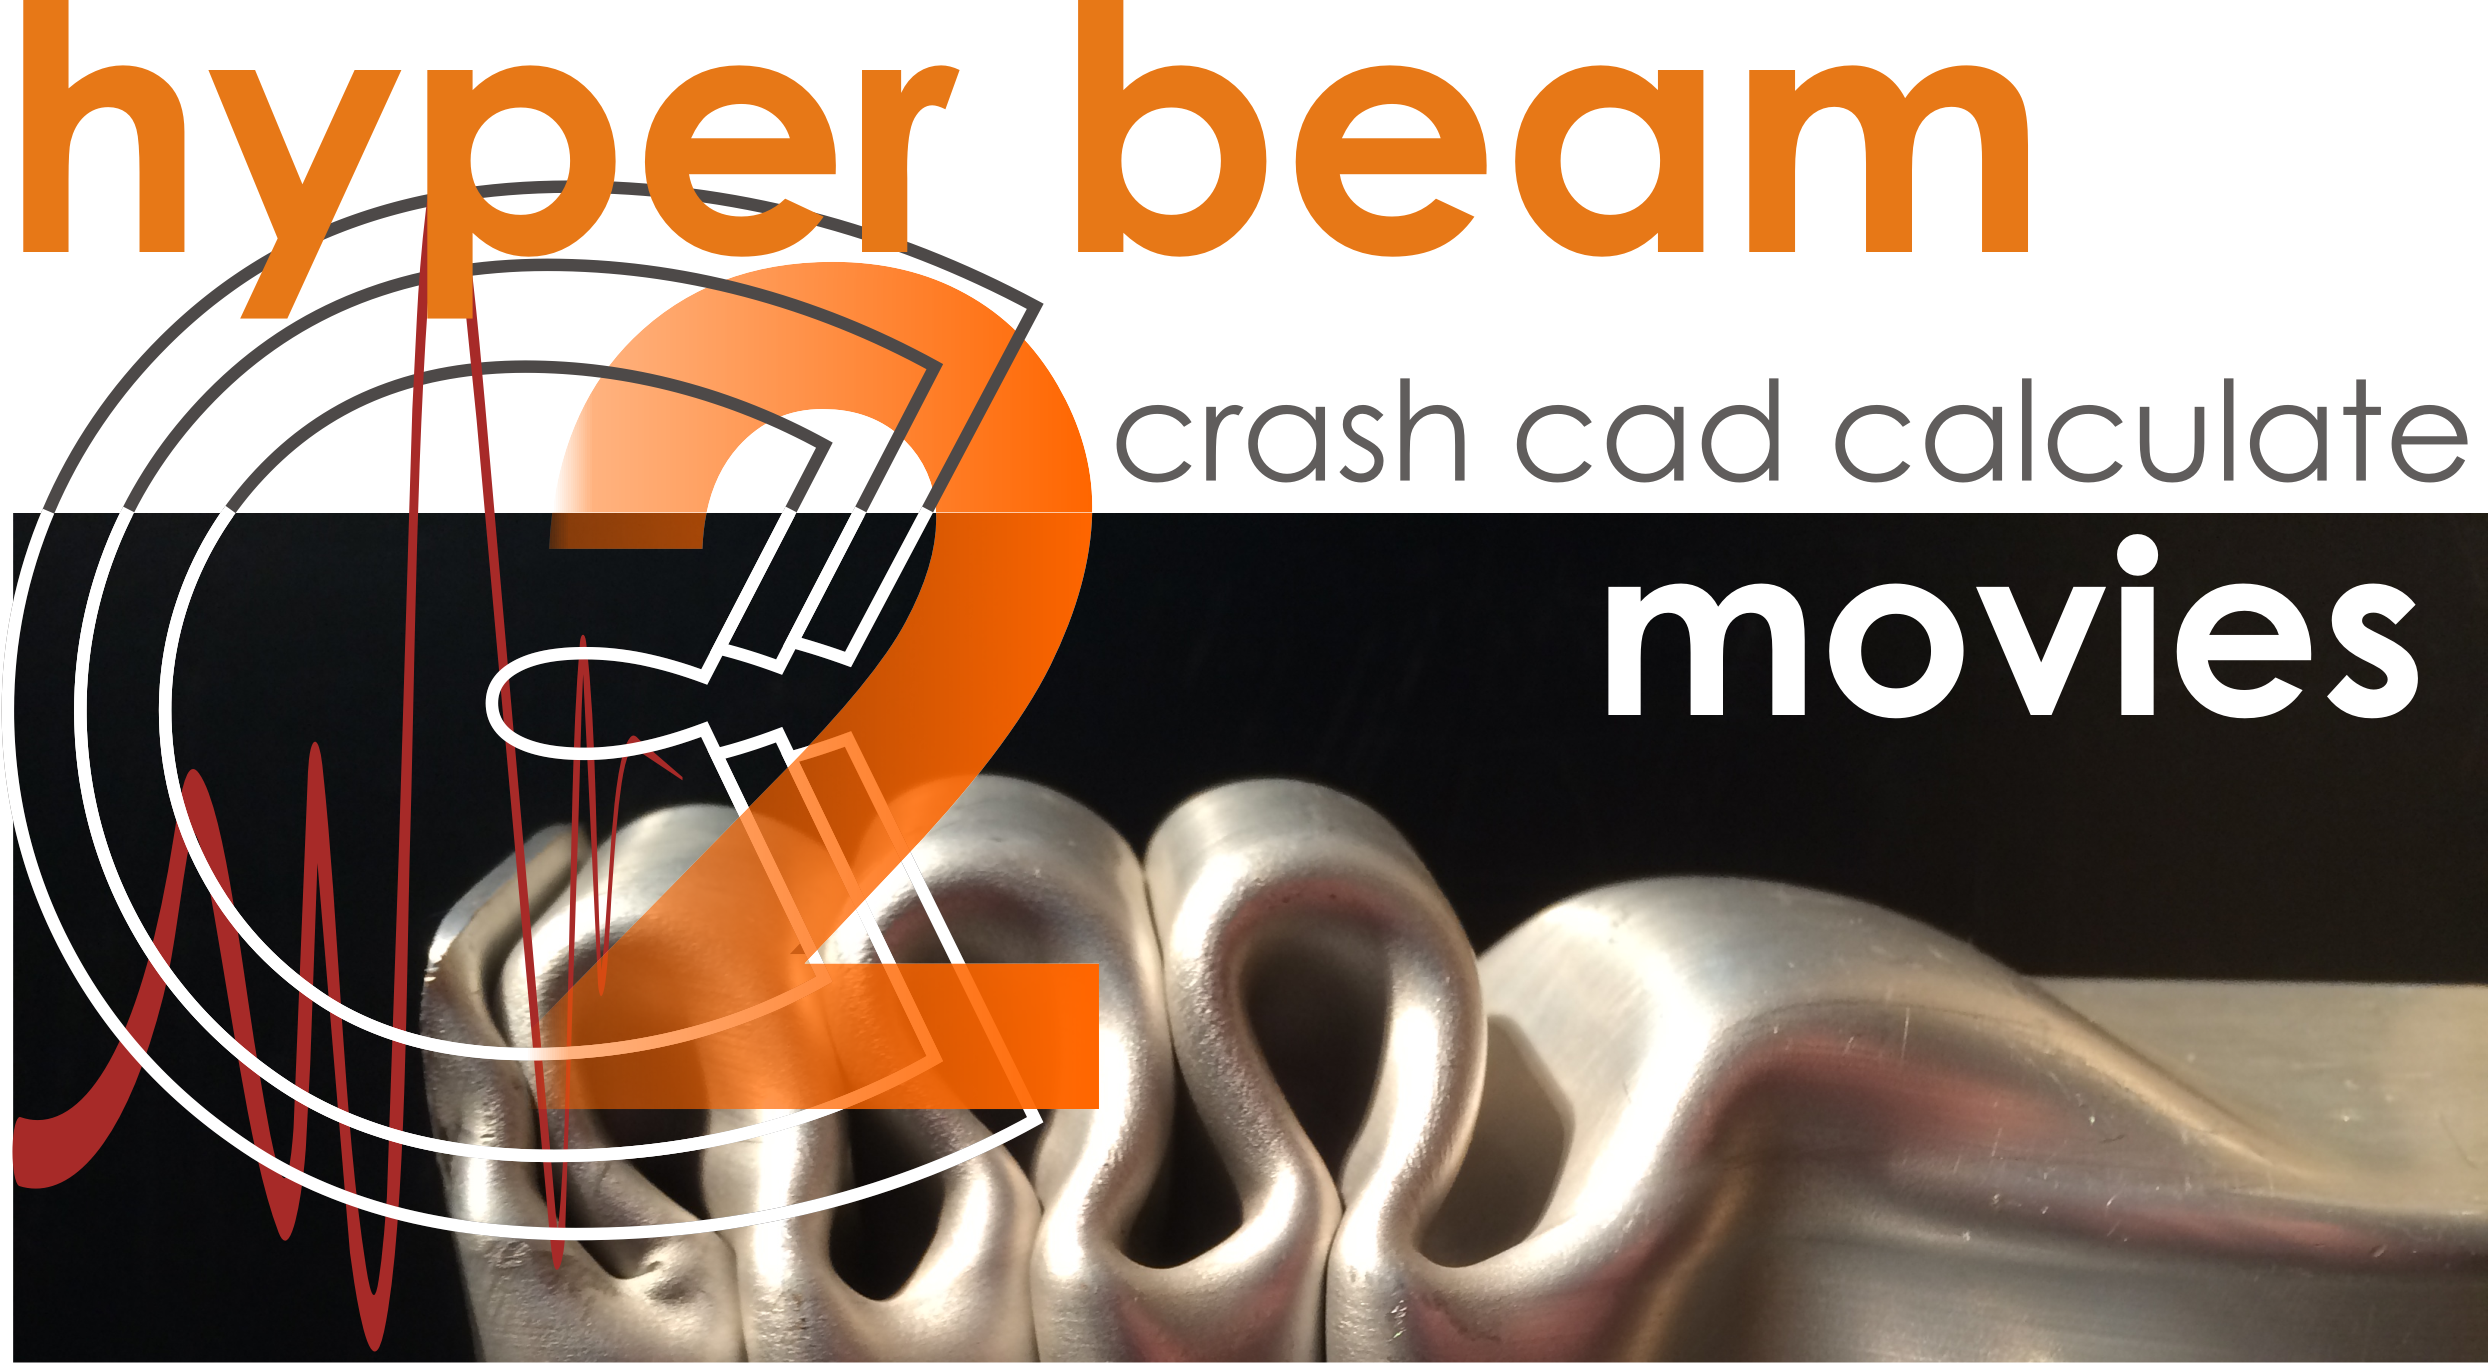 Crash Cad Calculate and HyperBeam Demo